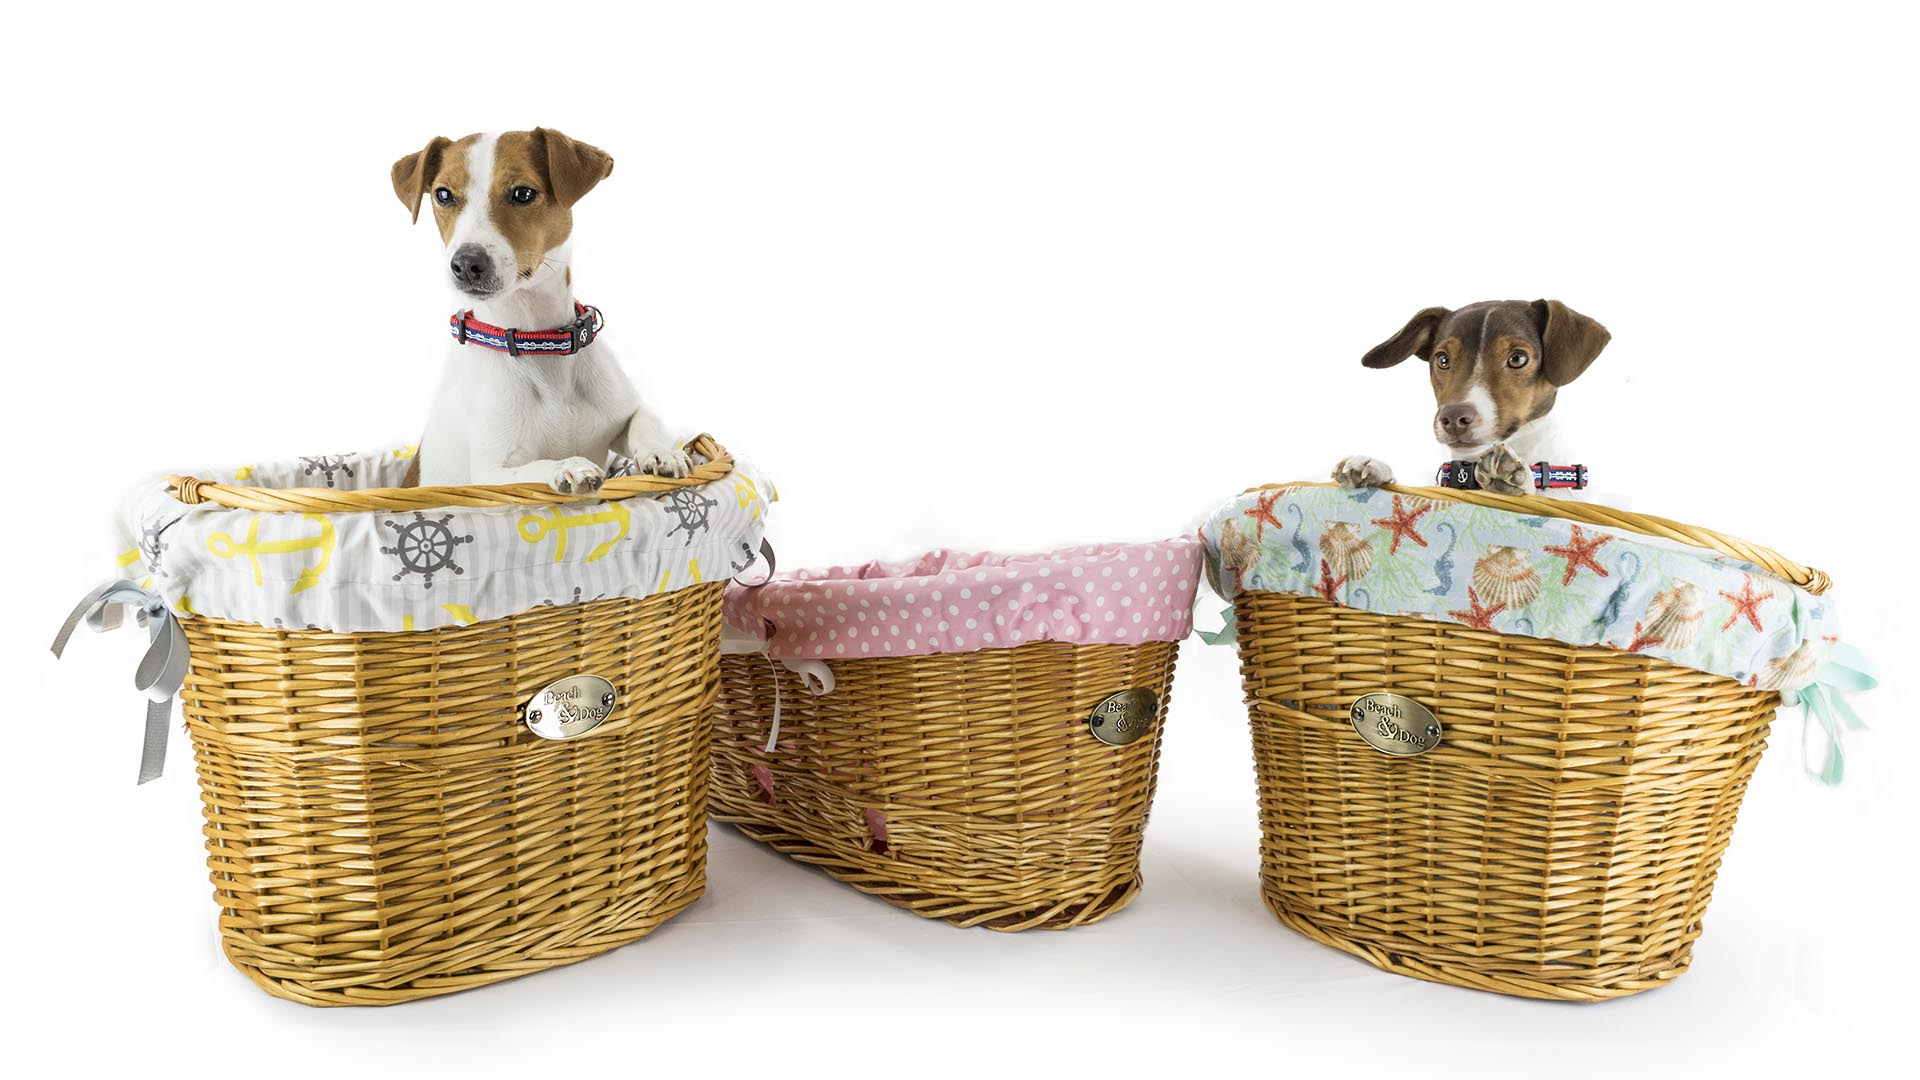 Beach & Dog Co. - Handcrafted bicycle baskets for dogs - The Largest bike baskets available